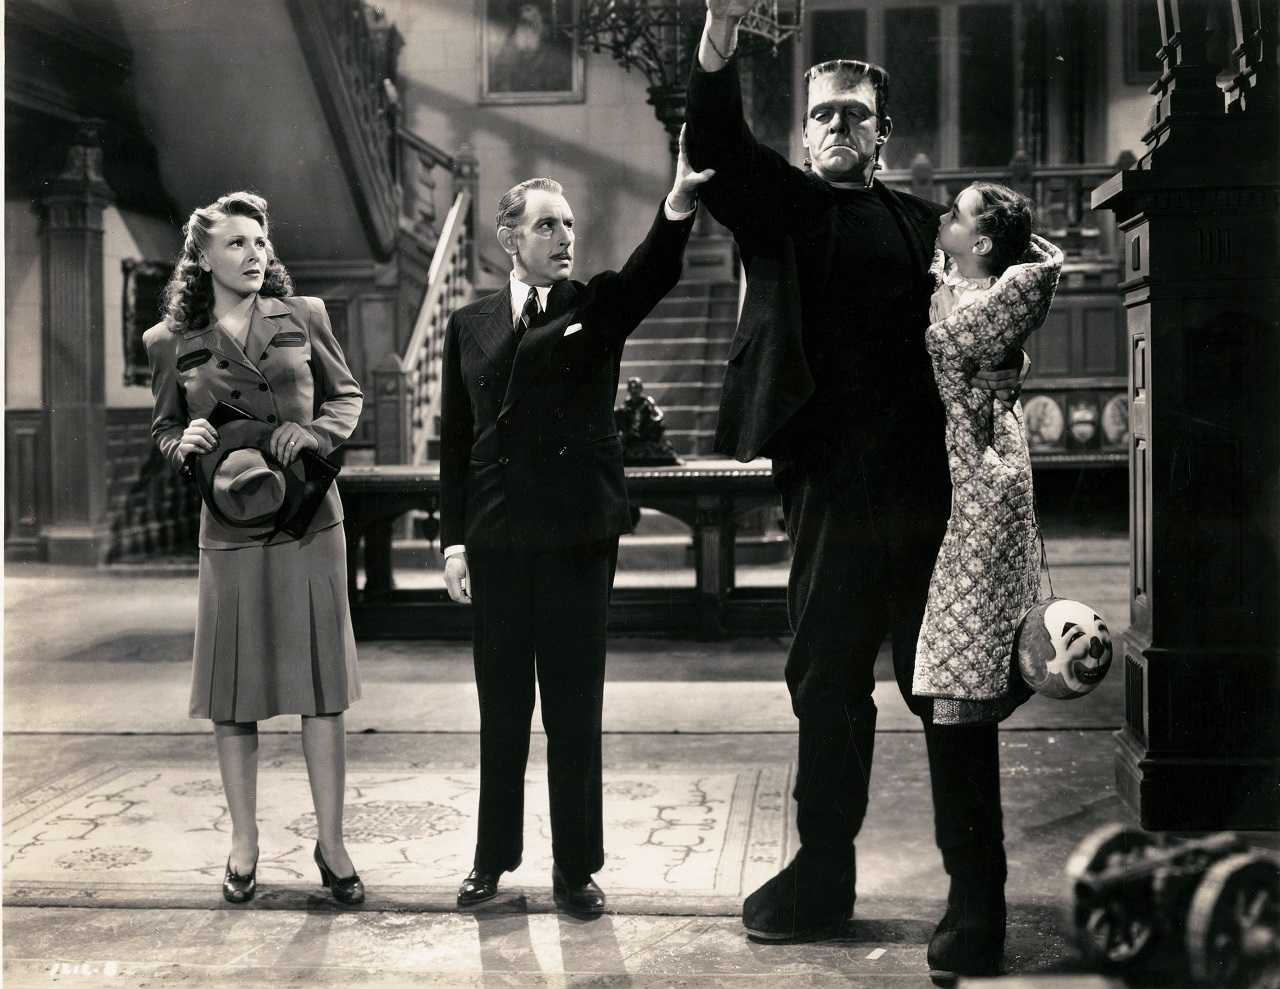 Ludwig Frankenstein (Cedric Hardwicke) accompanied by wife Elsa (Evelyn Ankers) introduces his monster (Lon Chaney Jr) holding Janet Ann Gallow in The Ghost of Frankenstein (1942)